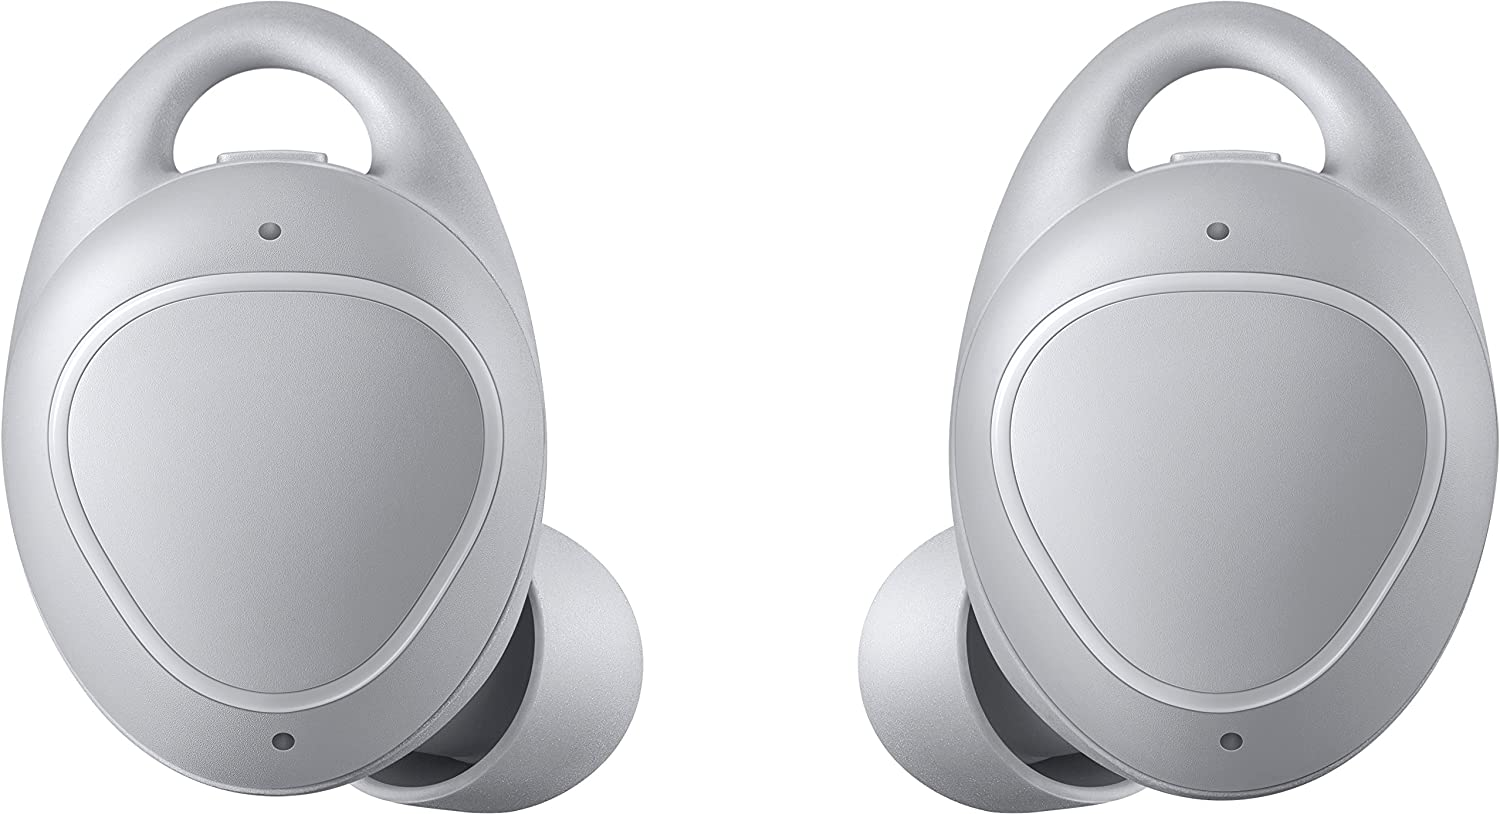 Samsung Gear IconX 2018 Ecouteur Bluetooth pour Samsung Galaxy Gris (Import Allemagne)